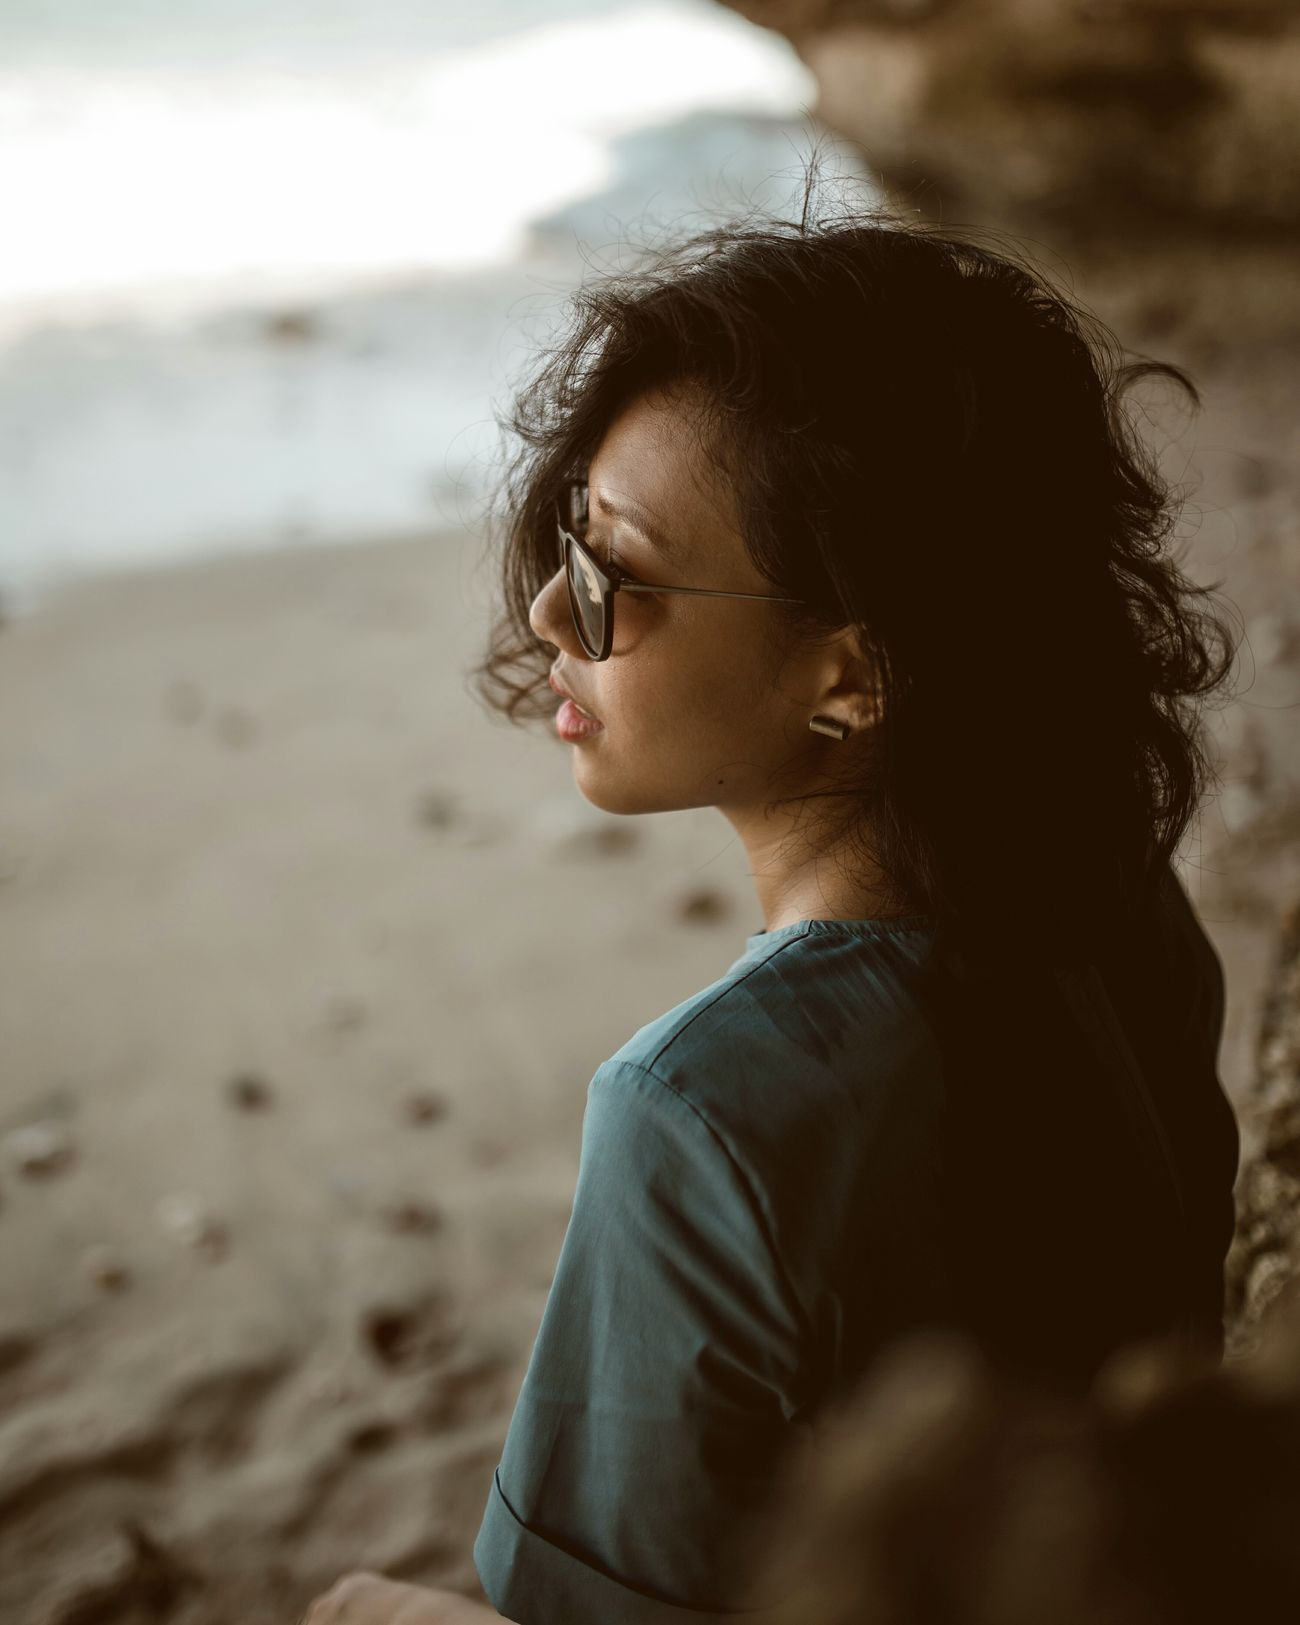 lay my soul in unnamed rivers Close-up Beach One Woman Only Portrait Of A Woman Portrait Of A Girl Portraits Of EyeEm Portrait Women Of EyeEm Natural Light Portrait Beautiful People Light Light And Shadow Sunglasses Curly Hair Side Profile Women Around The World